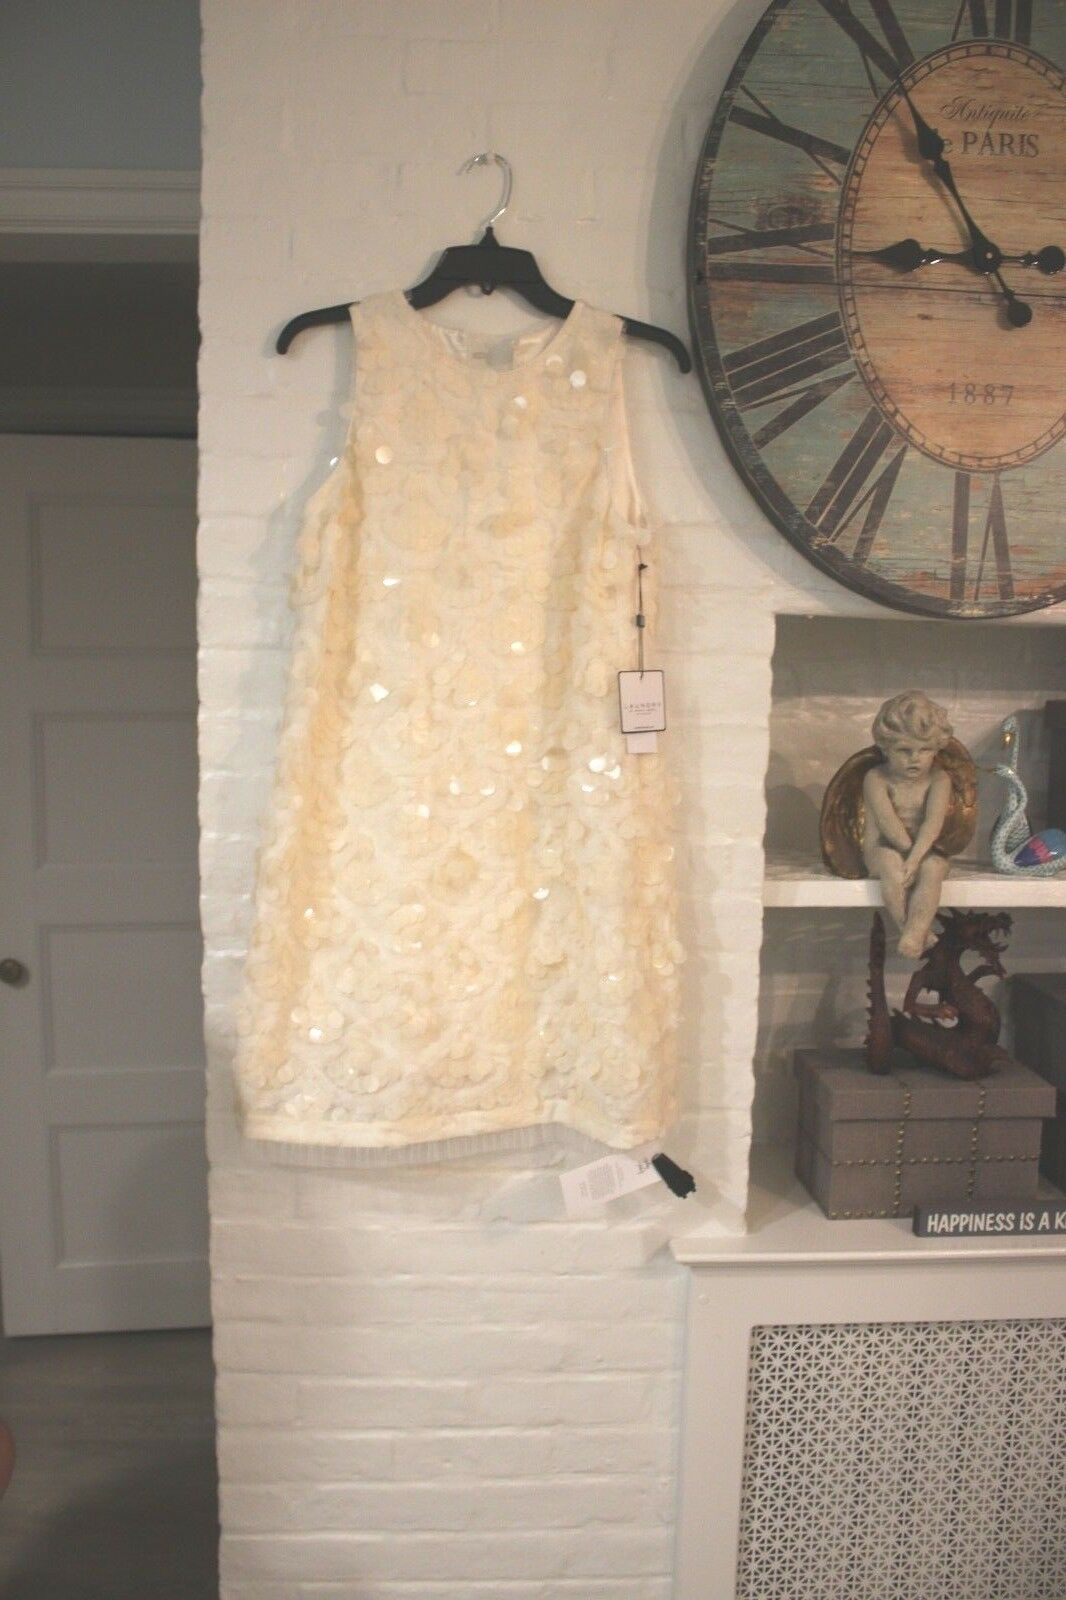 BNWT Laundry by Shelli Segal damen s Cream Sequin Disk Cocktail Dress Sz 4